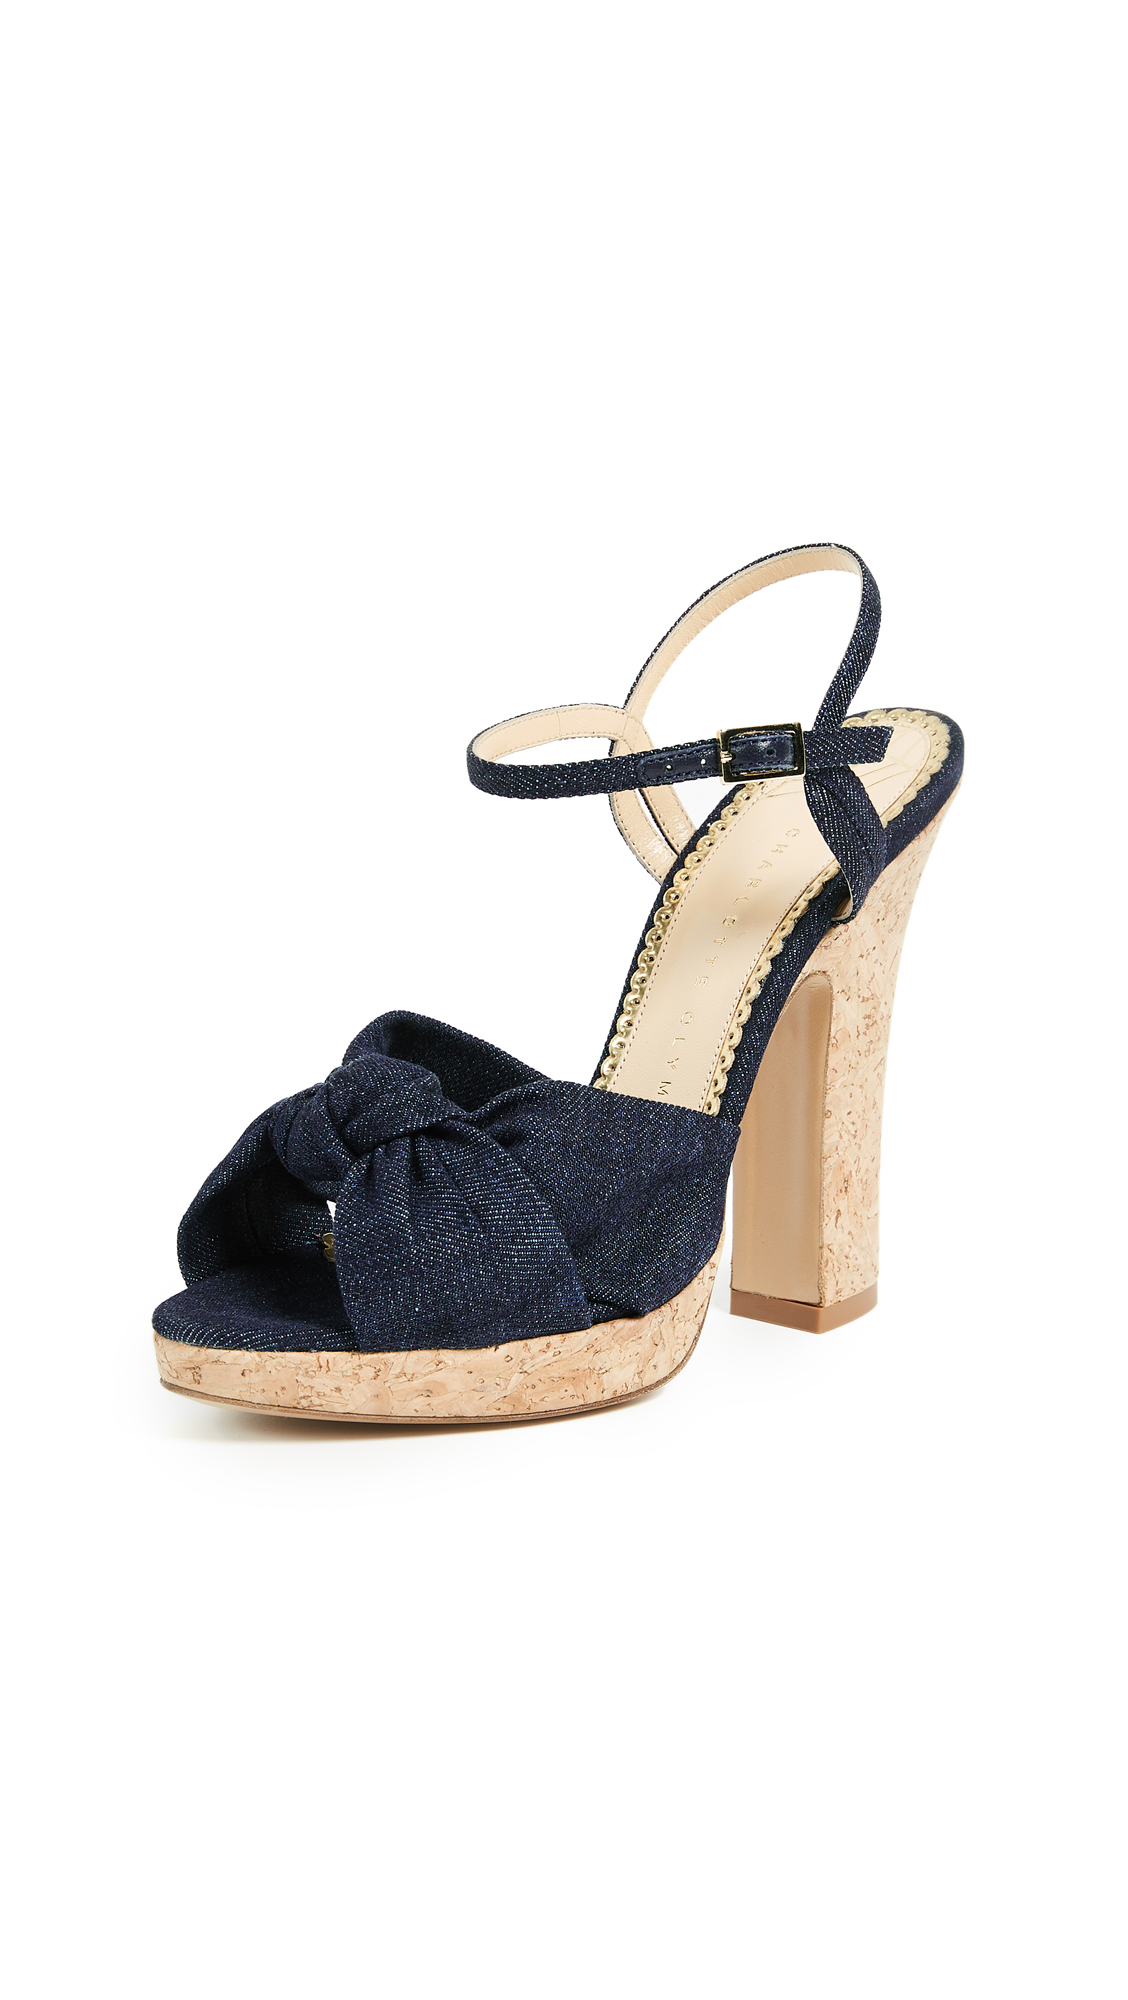 Charlotte Olympia Farrah Strappy Pumps - Dark Denim/Natural